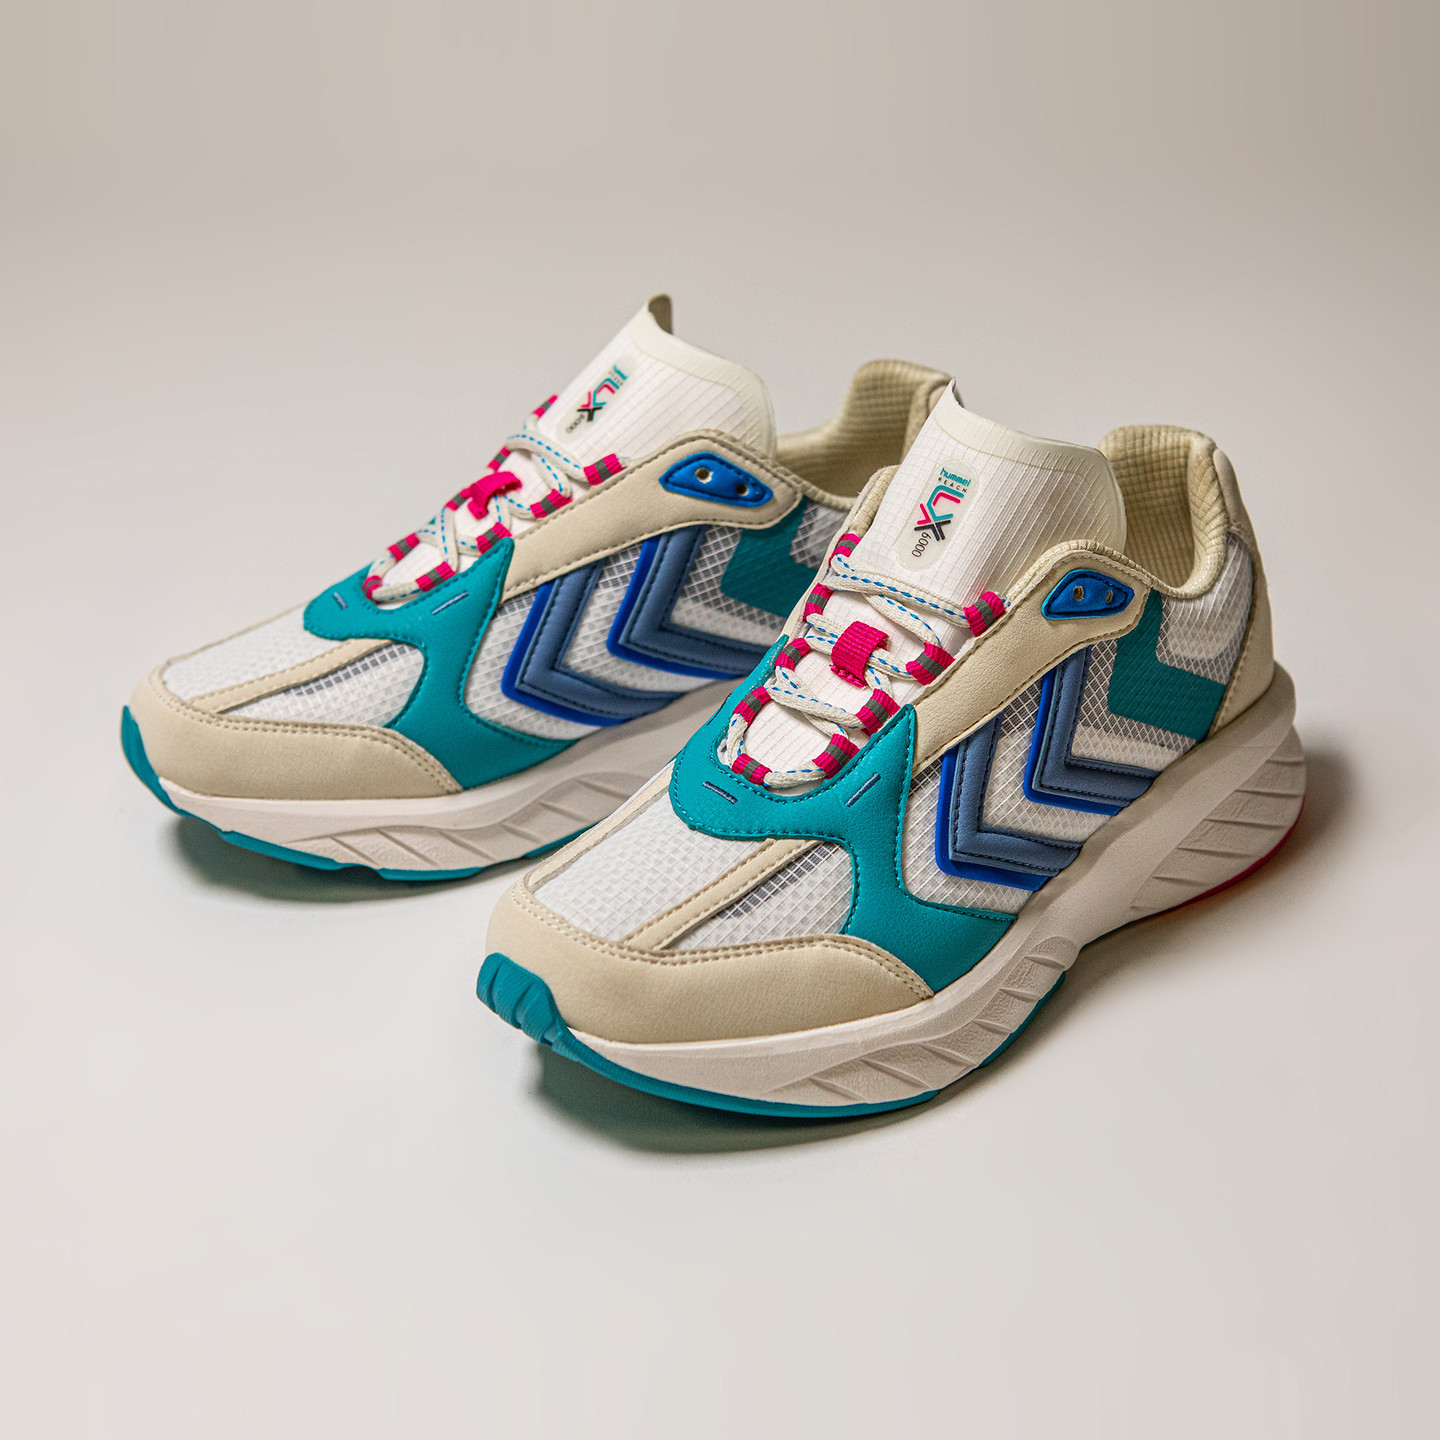 Hummel Reach LX 6000 Archive Off White / Teal / Pink 209011-9109